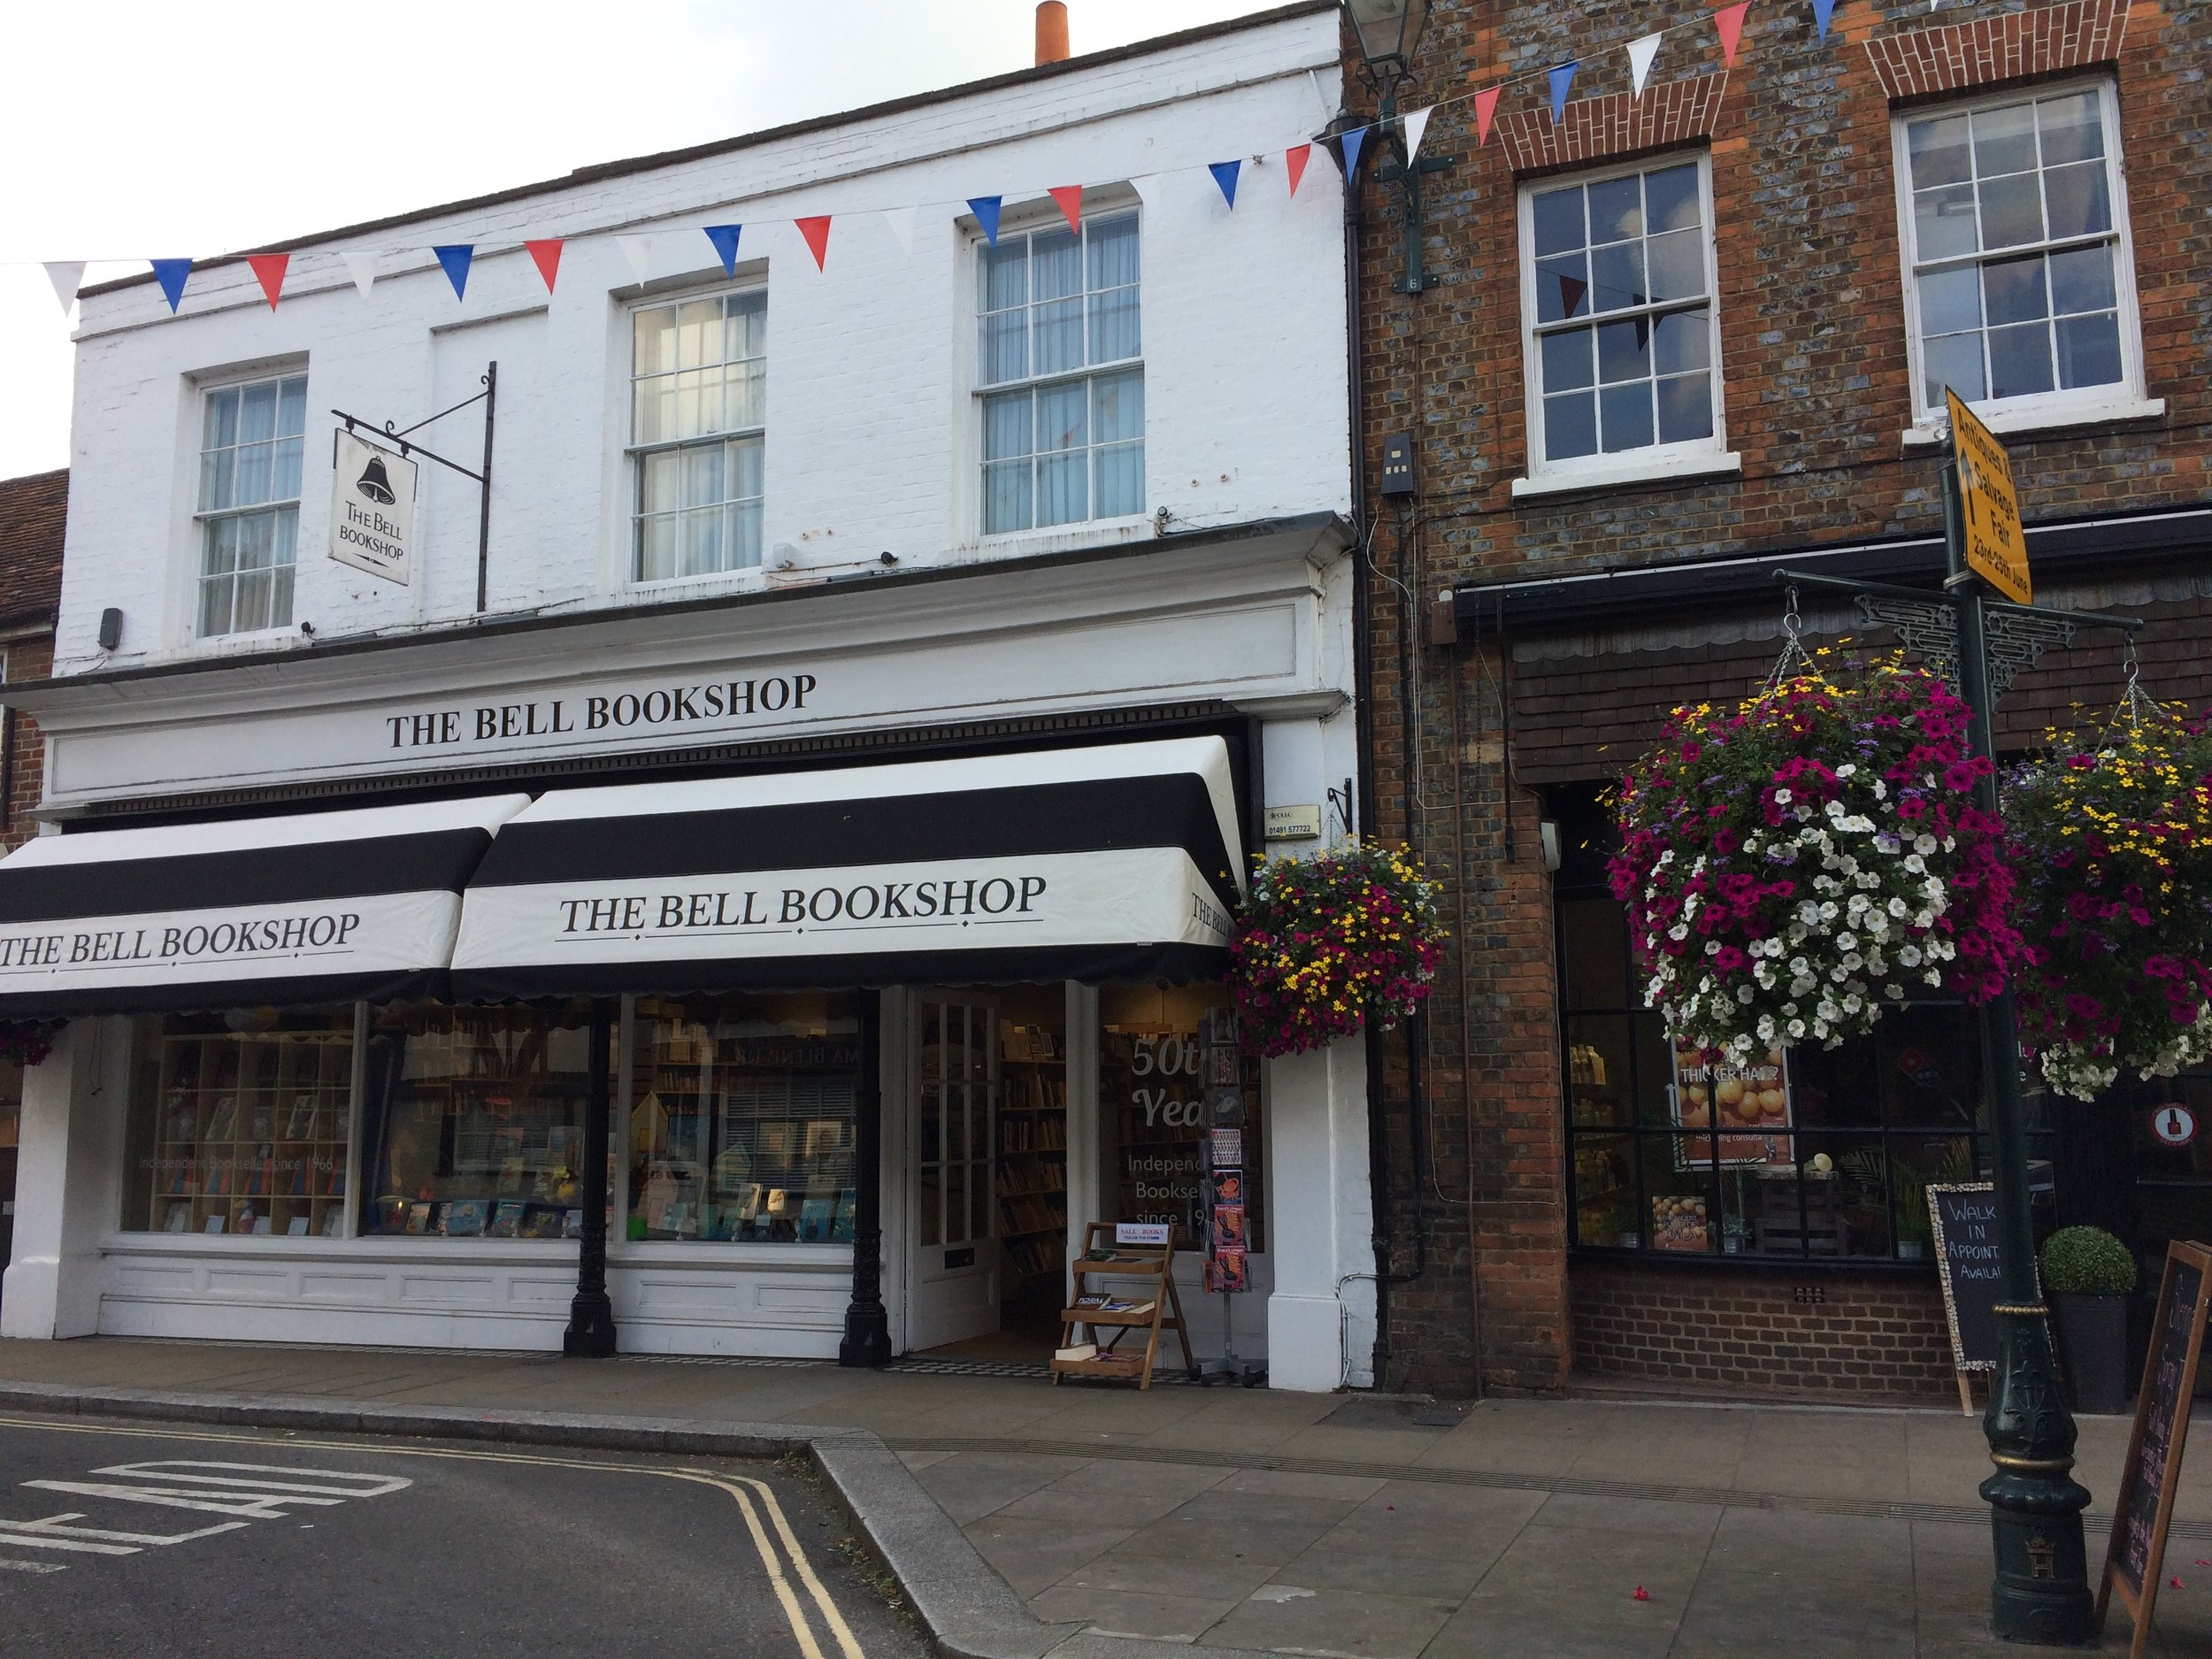 The Bell Bookshop-50 year old Independent bookstore of Henley-on-Thames